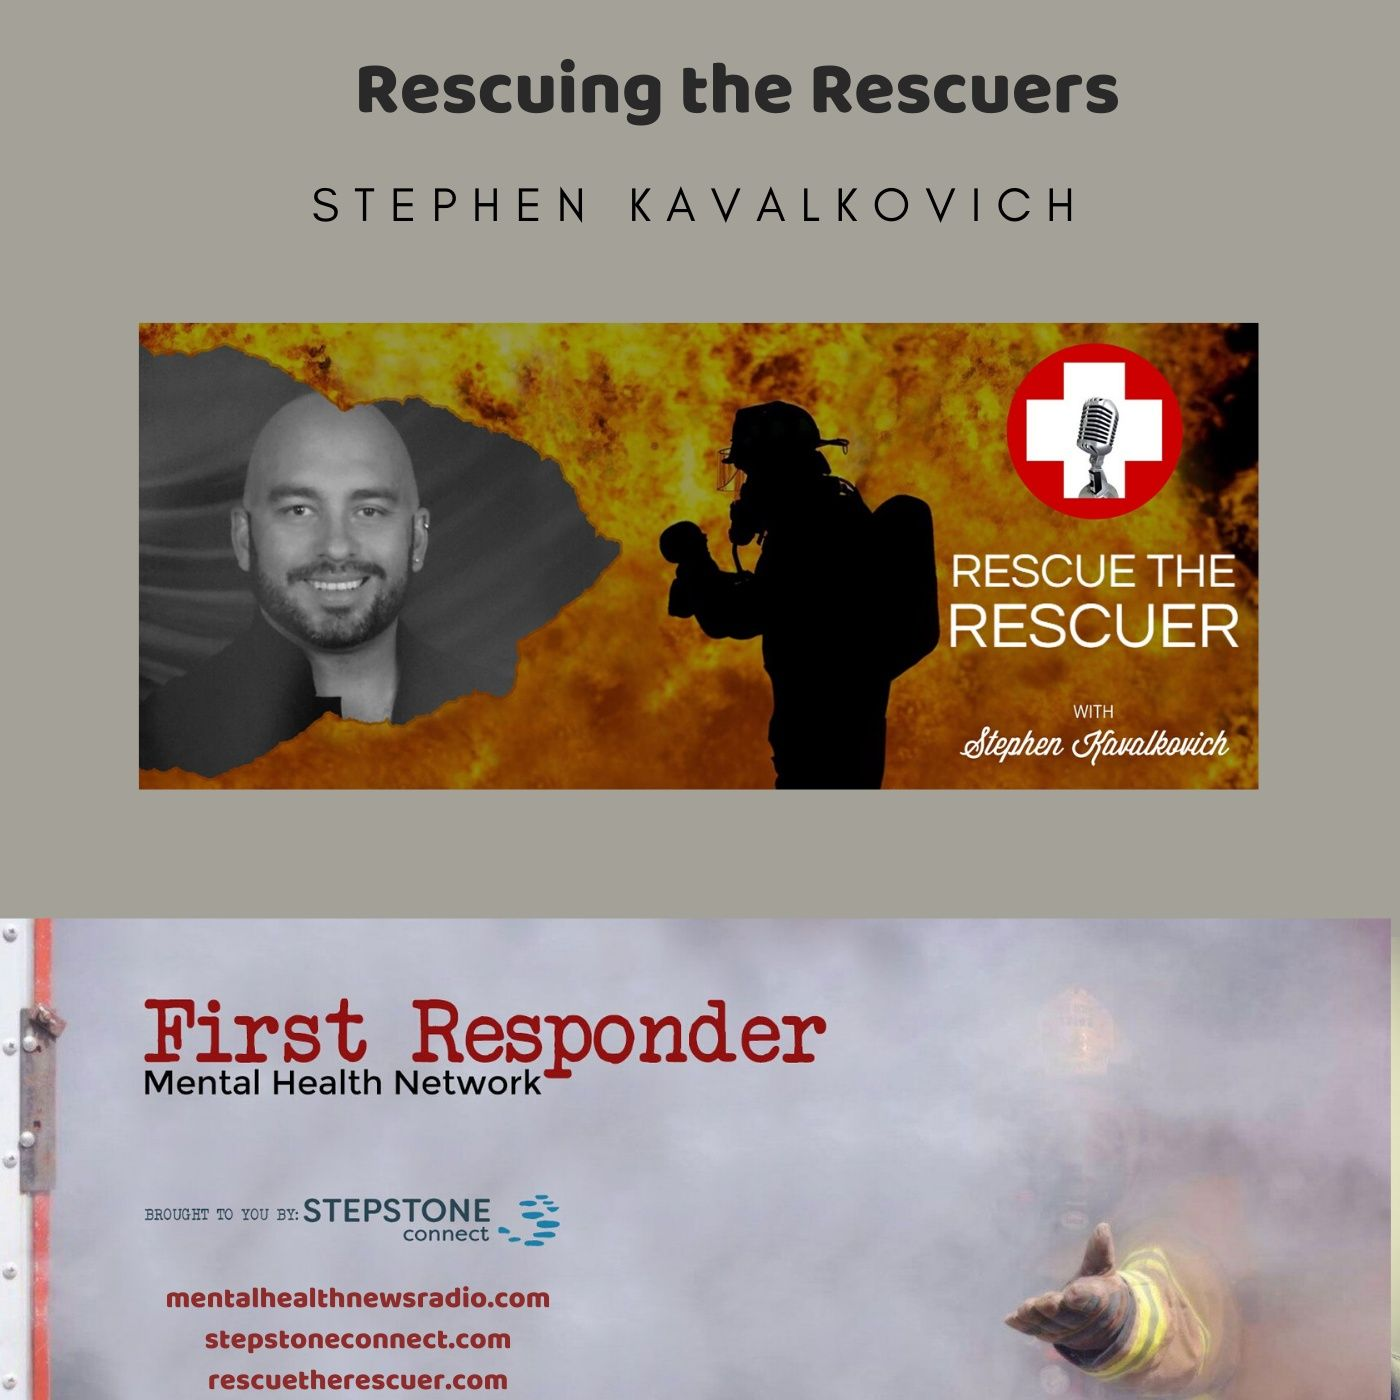 Mental Health News Radio - Rescuing the Rescuers